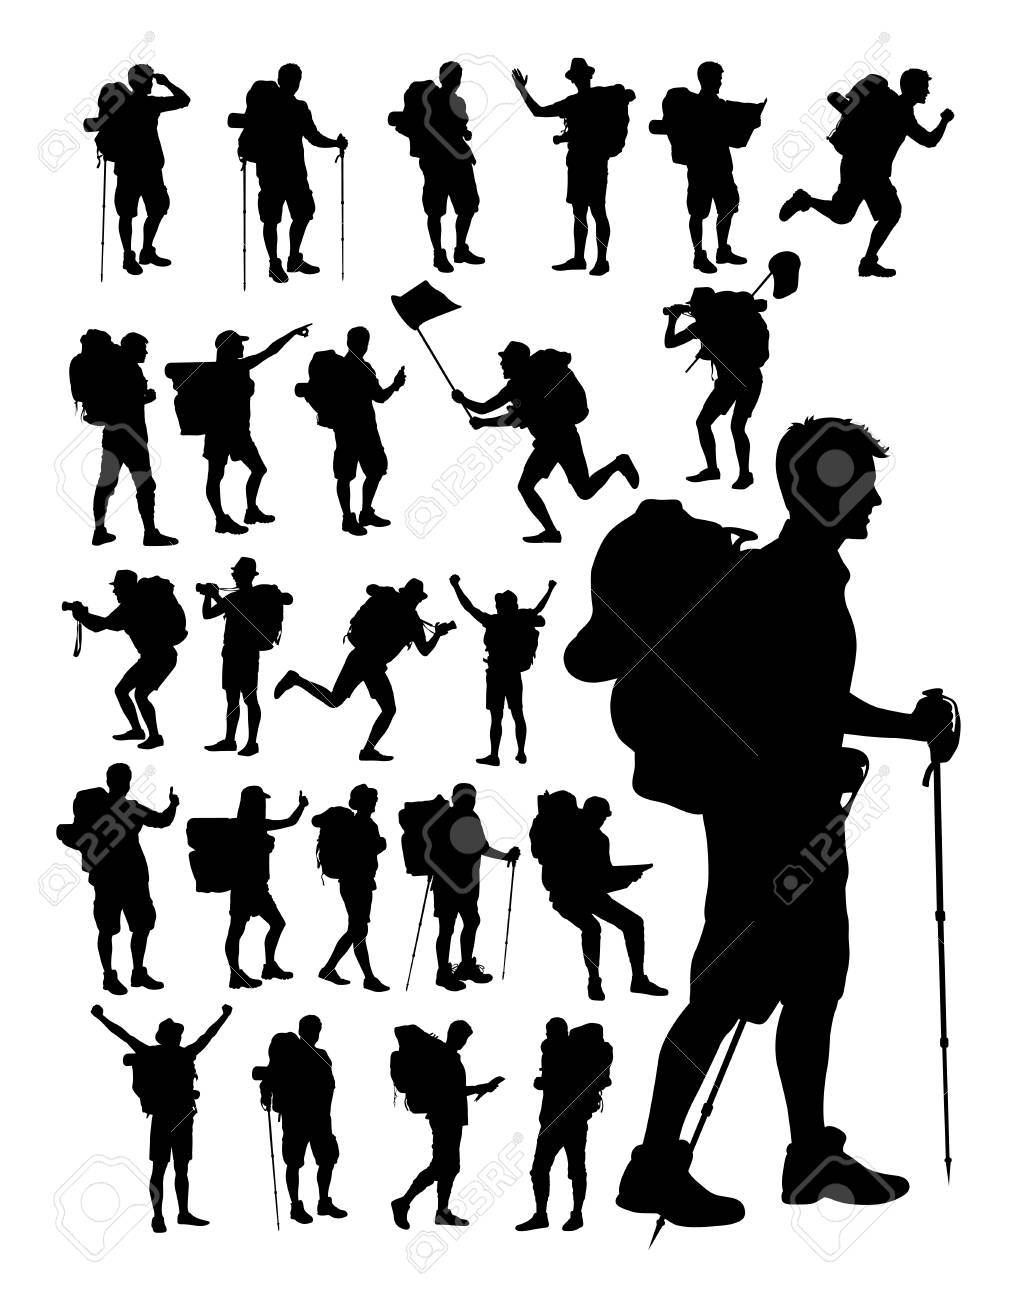 Hiker silhouettes on a white background - 100271851